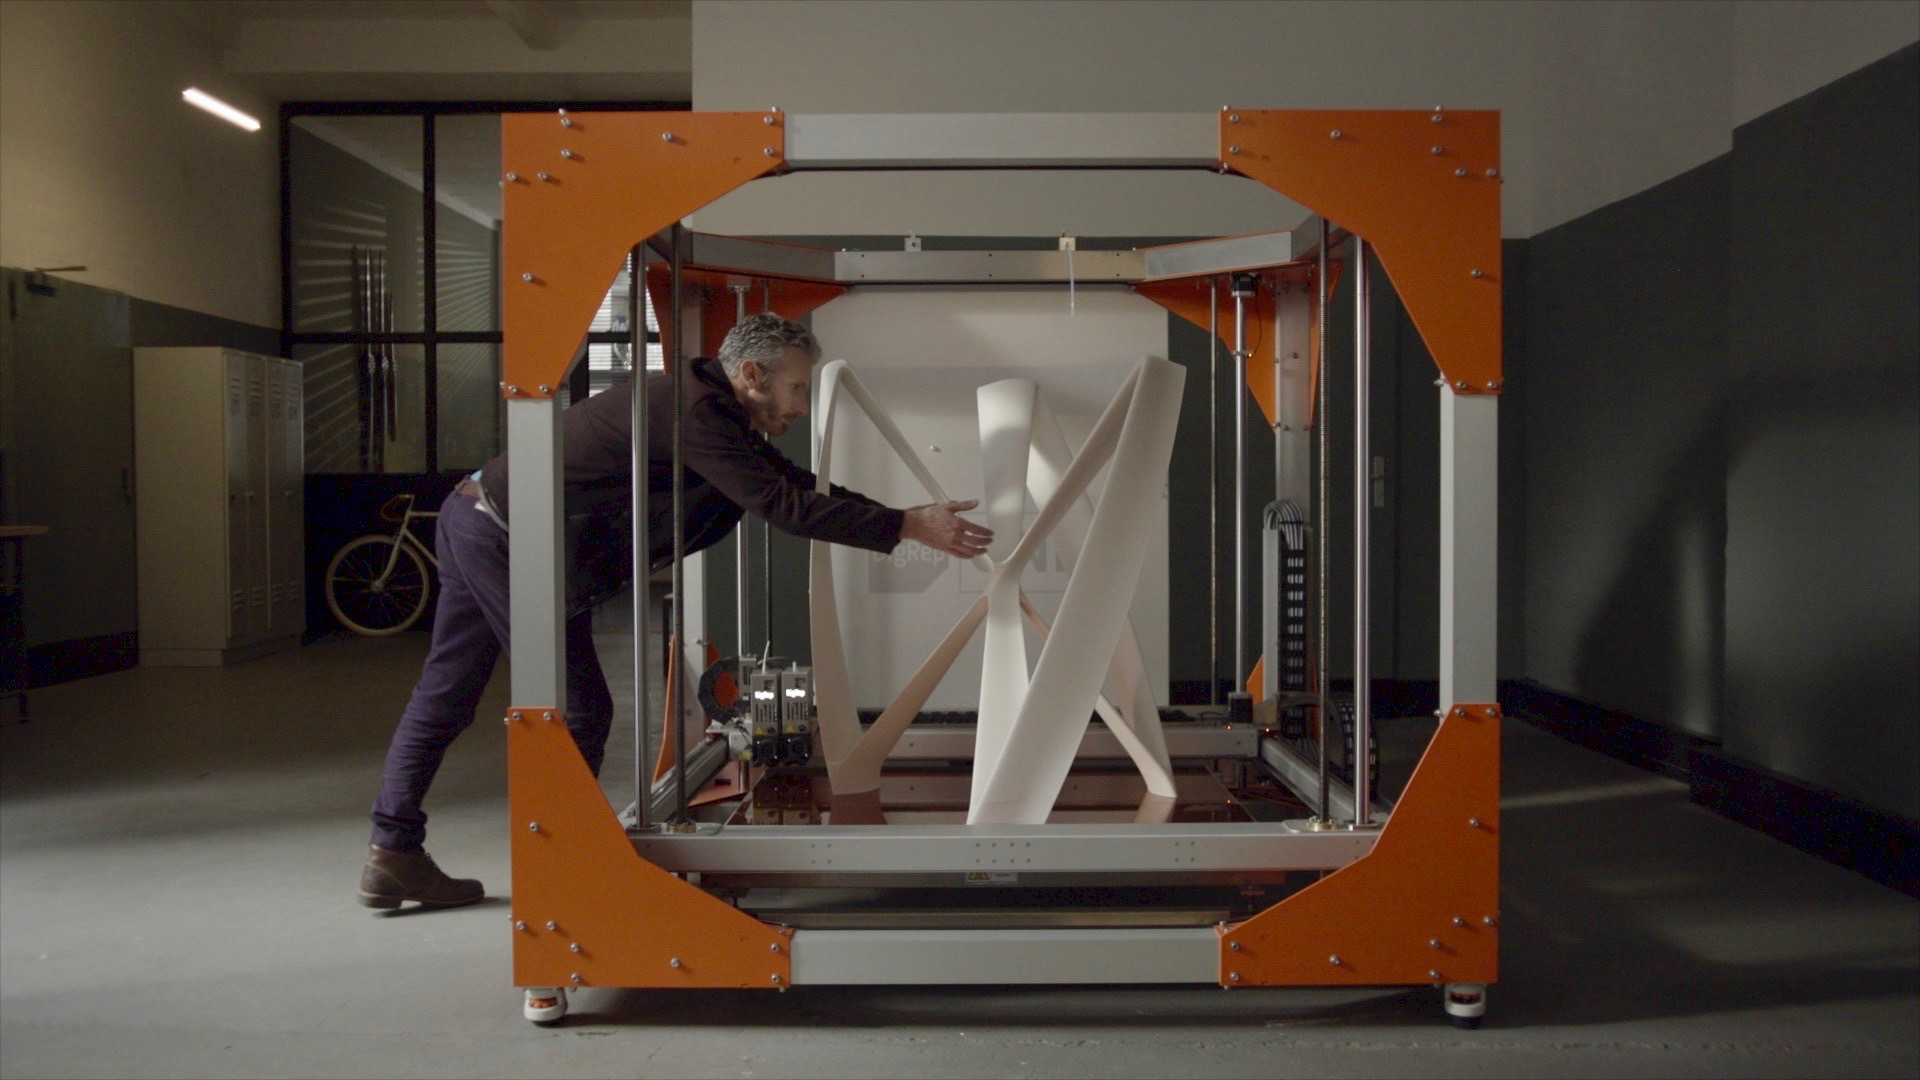 The BigRep ONE 3D printer offers a 1m3 print volume. Photo via Jürgen Scheunemann